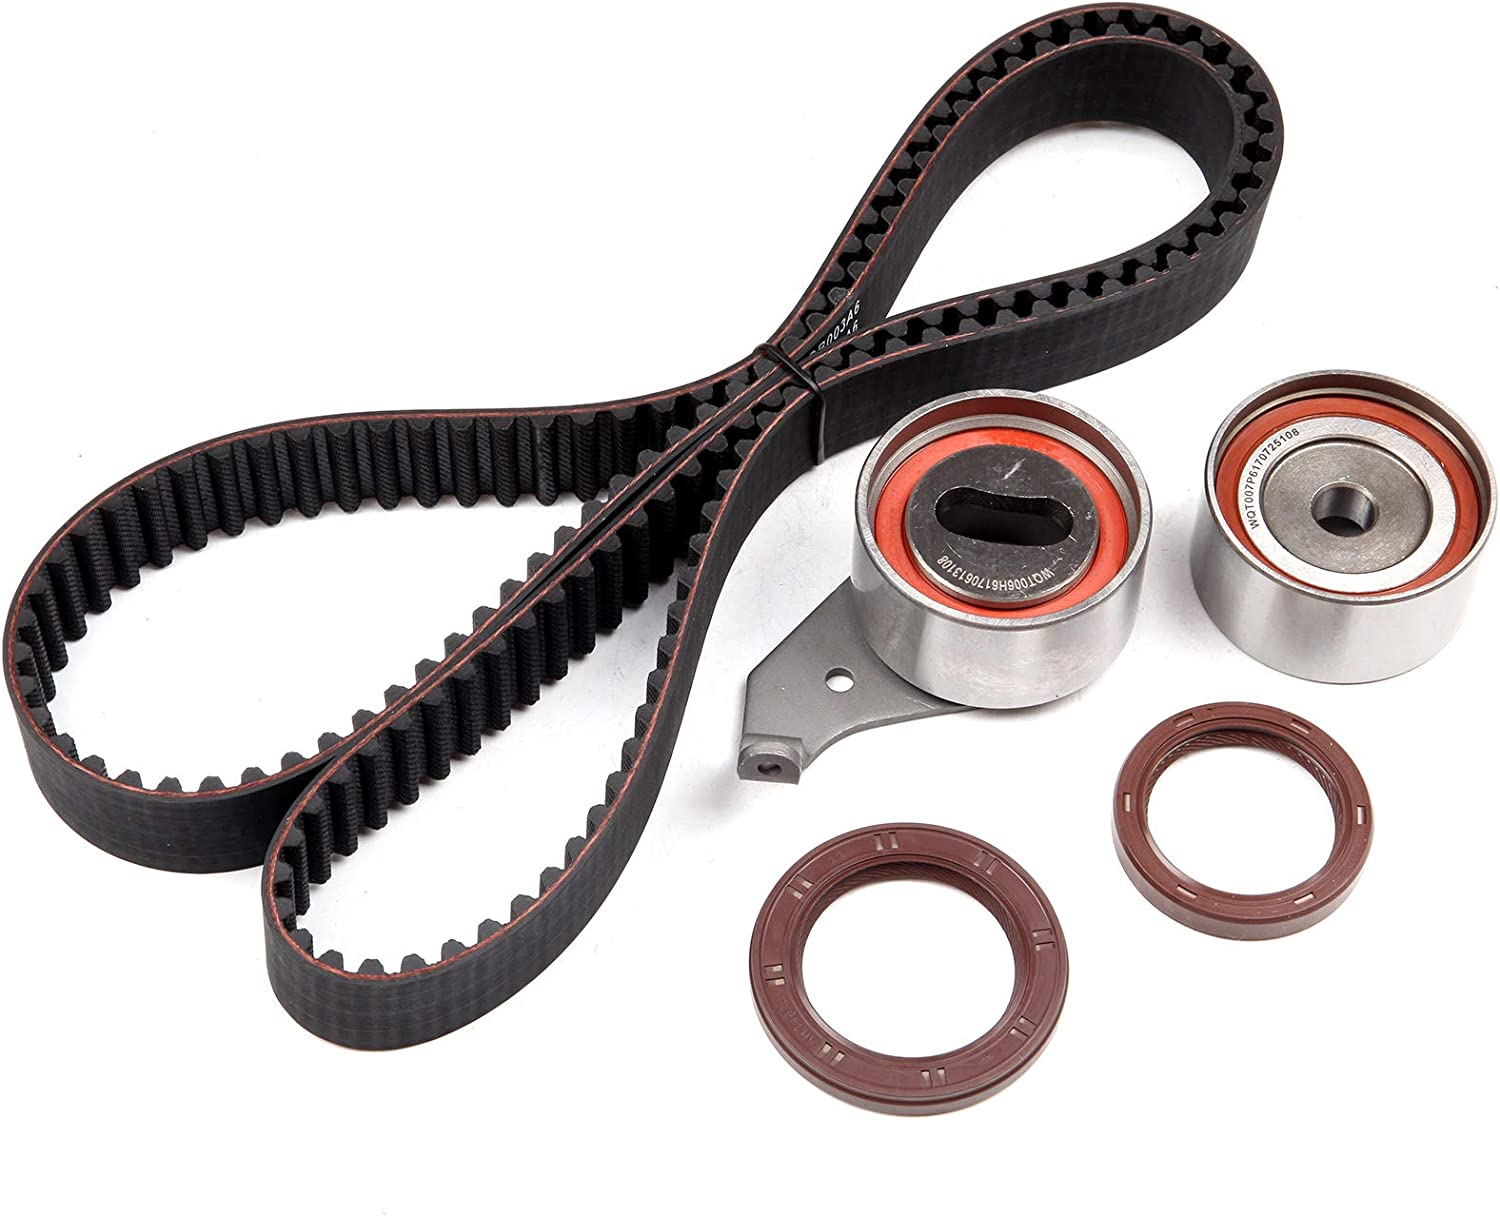 FINDAUTO Timing Belt Kits Suitable for 1987-2001 Toyota Camry 1986-1999 Toyota Celica 1991-1994 Toyota MR2 1996-2000 Toyota RAV4 1999-2001 Toyota Solara